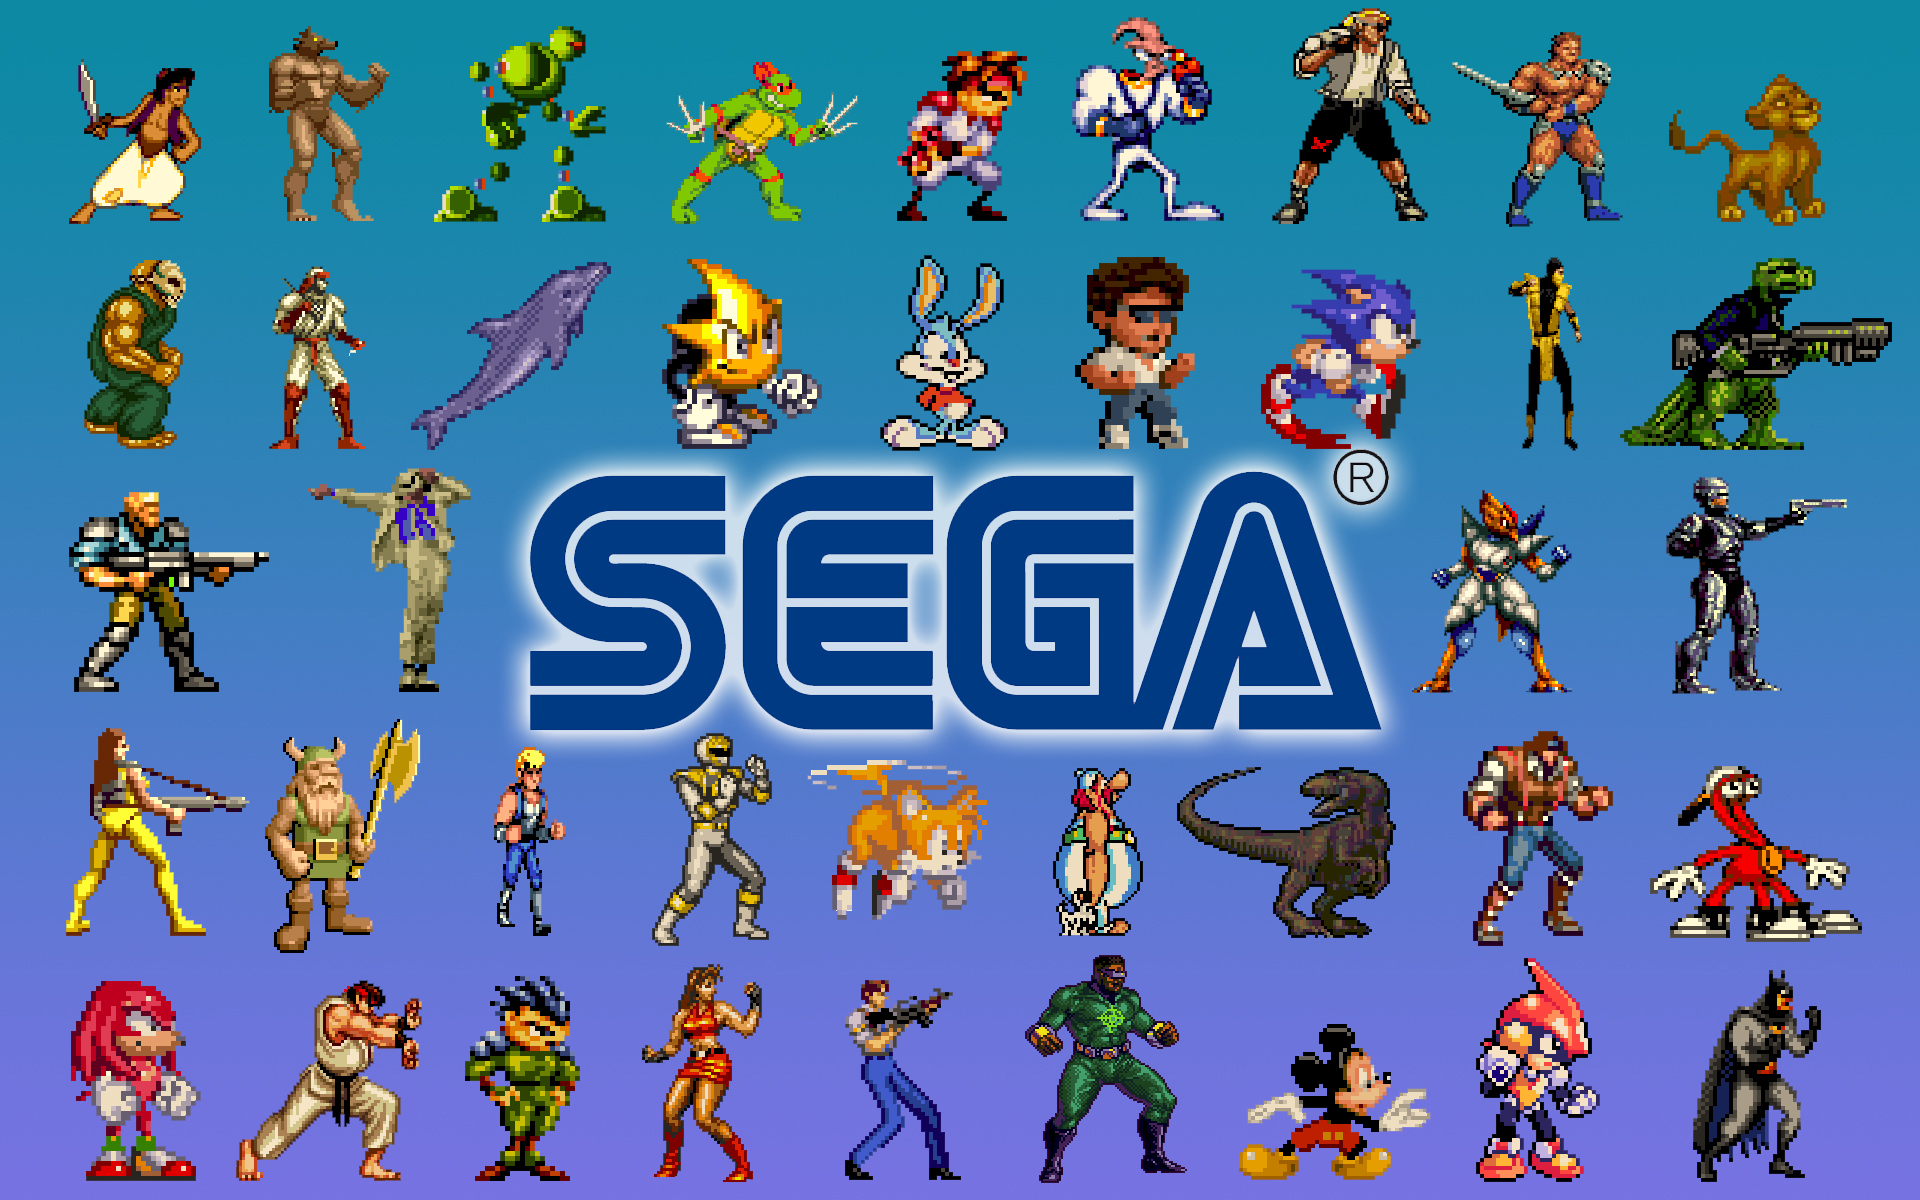 http://cdn.fansided.com/wp-content/blogs.dir/281/files/2013/10/SEGA_Genesis_Wallpaper_2_by_SolidAlexei.jpg